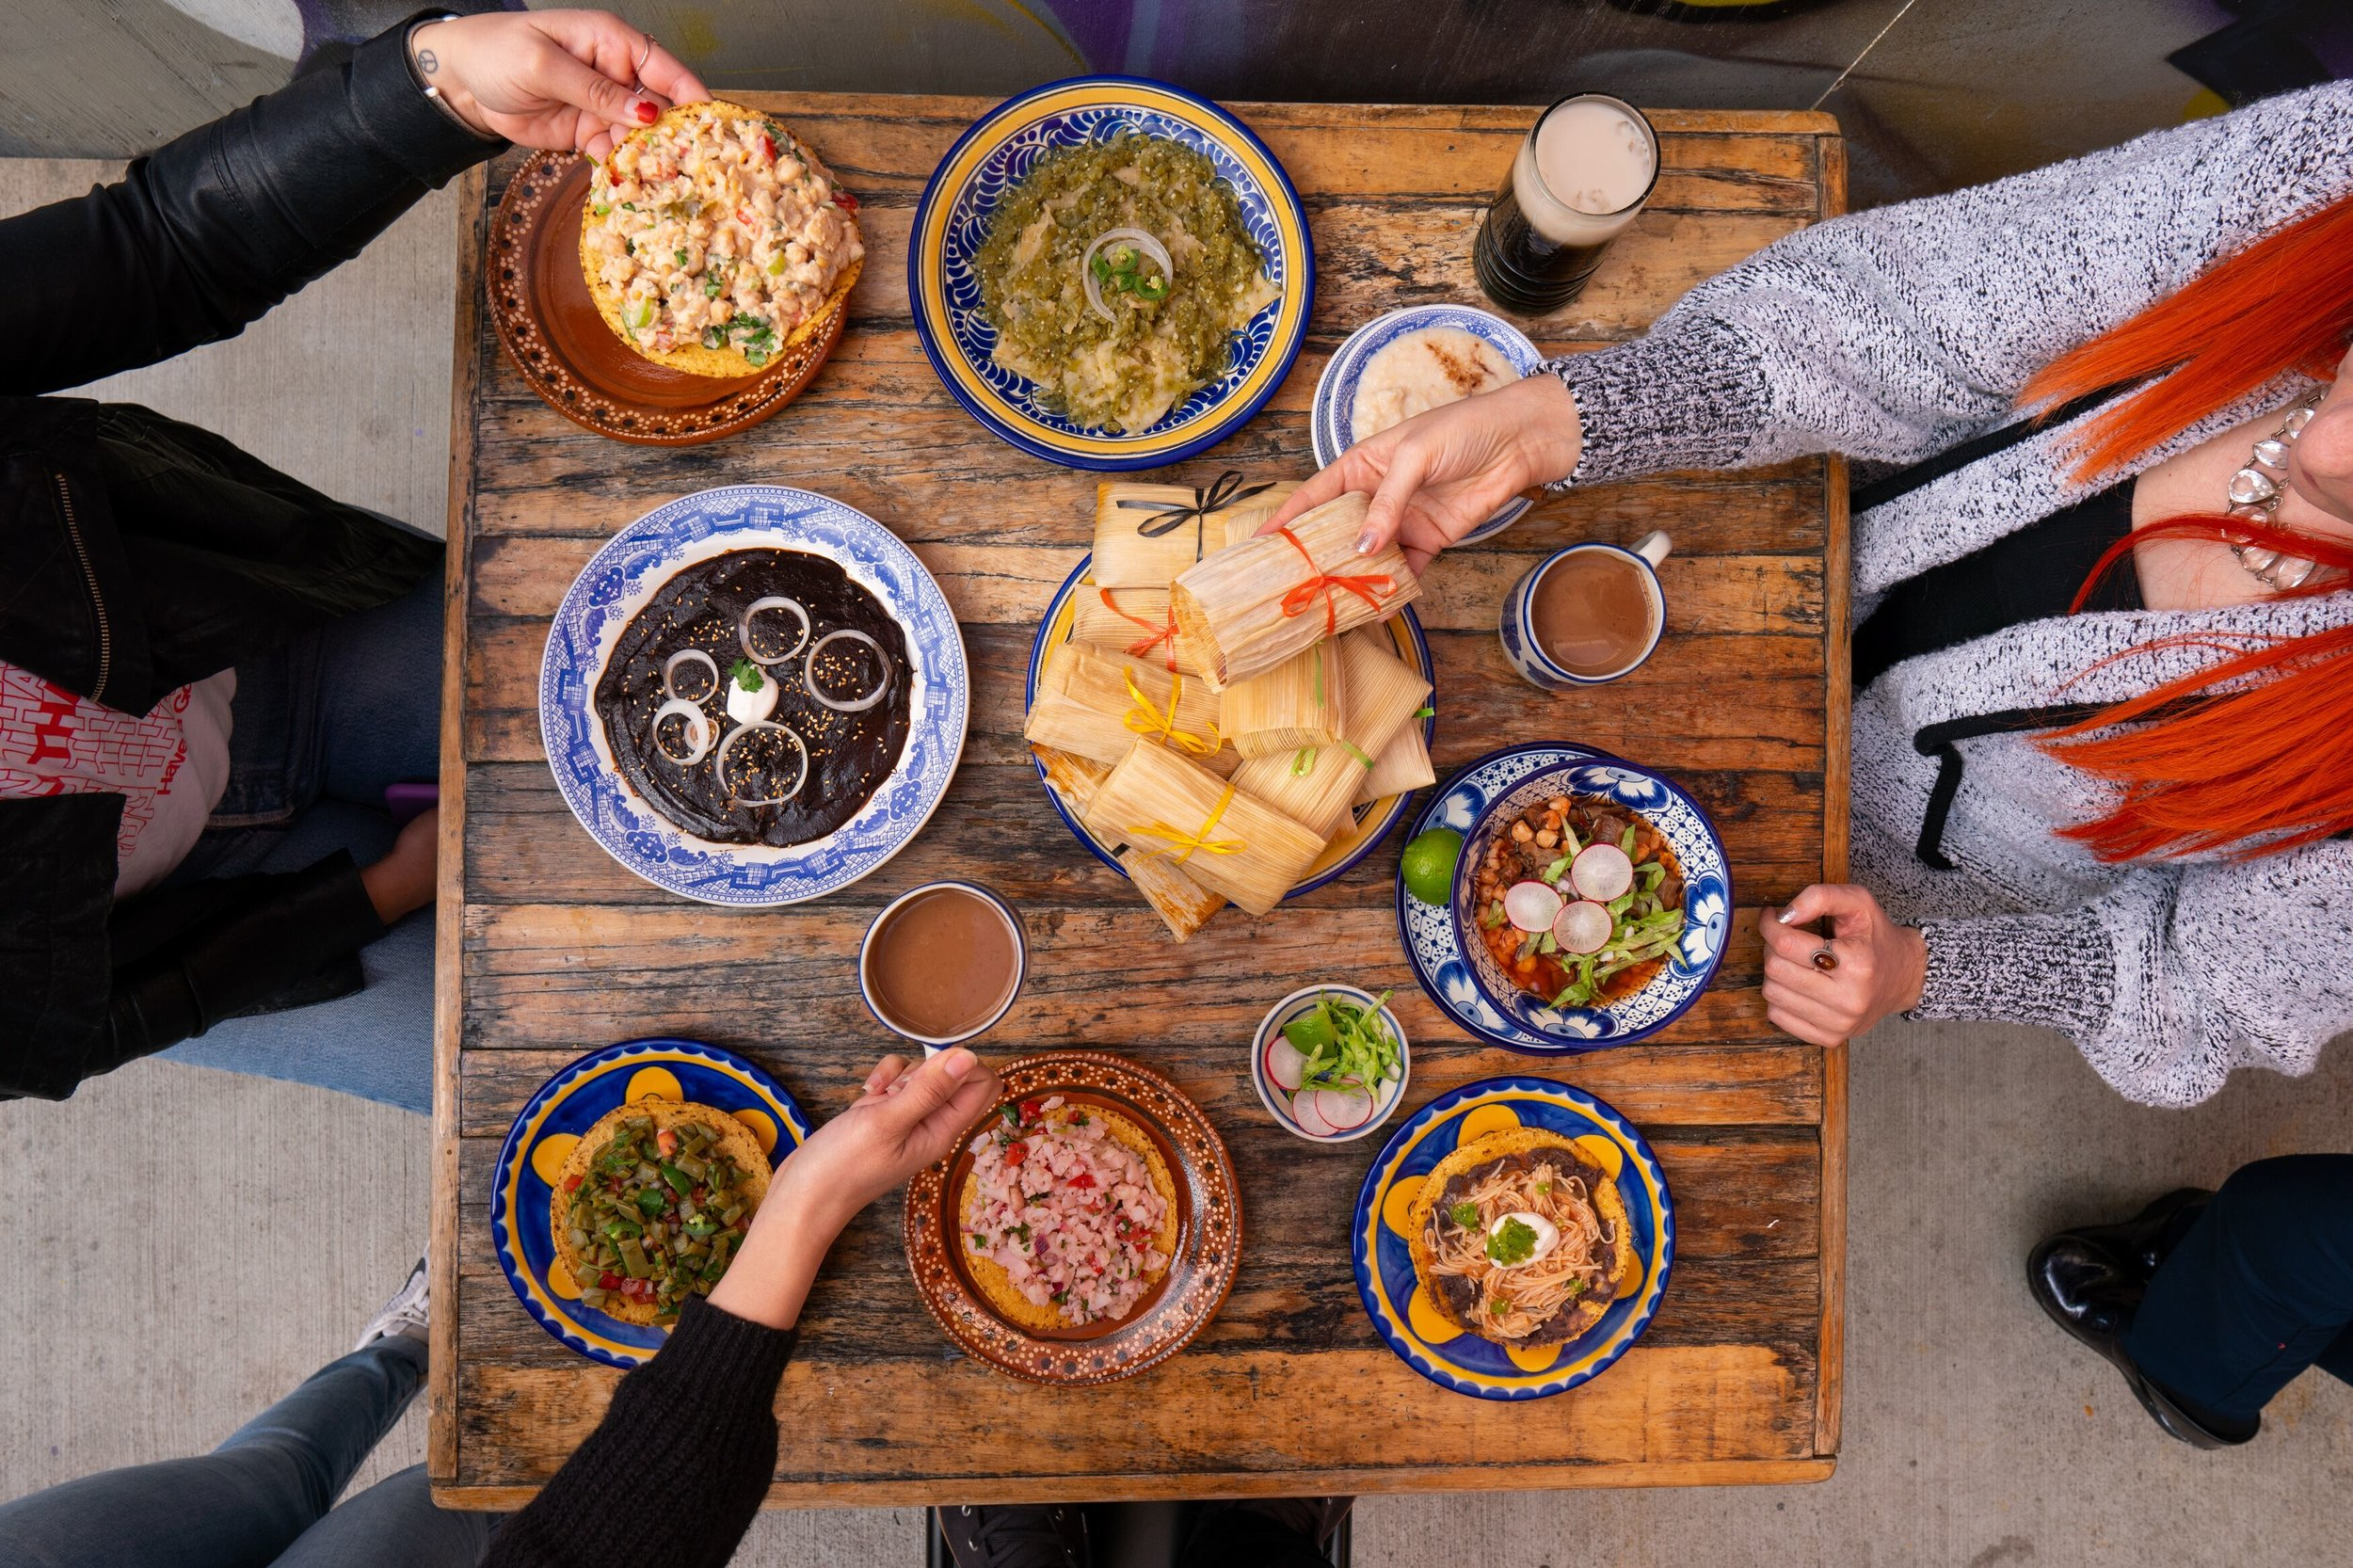 Experience delicious Vegan Mexican cuisine from La Vegana Mexicana, now at Santa Ana's popular food hall, 4th Street Market | photo courtesy of 100inc Agency